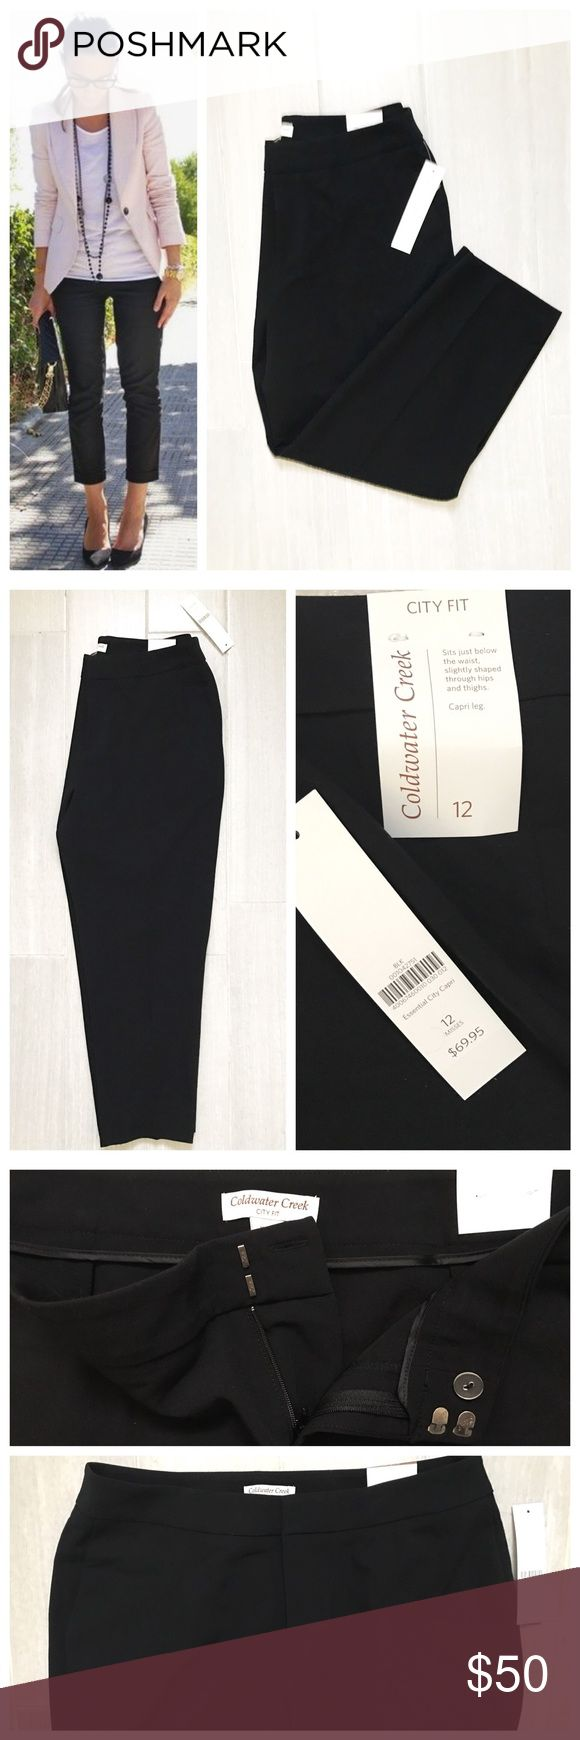 "NWT Coldwater Creek Black Capri Pants City Fit New with tags black capri pants by Coldwater Creek ""city fit"". Size 12. Black. 73% polyester 20% rayon 7% spandex. First photo on left not actual item just showing for style! Coldwater Creek Pants"